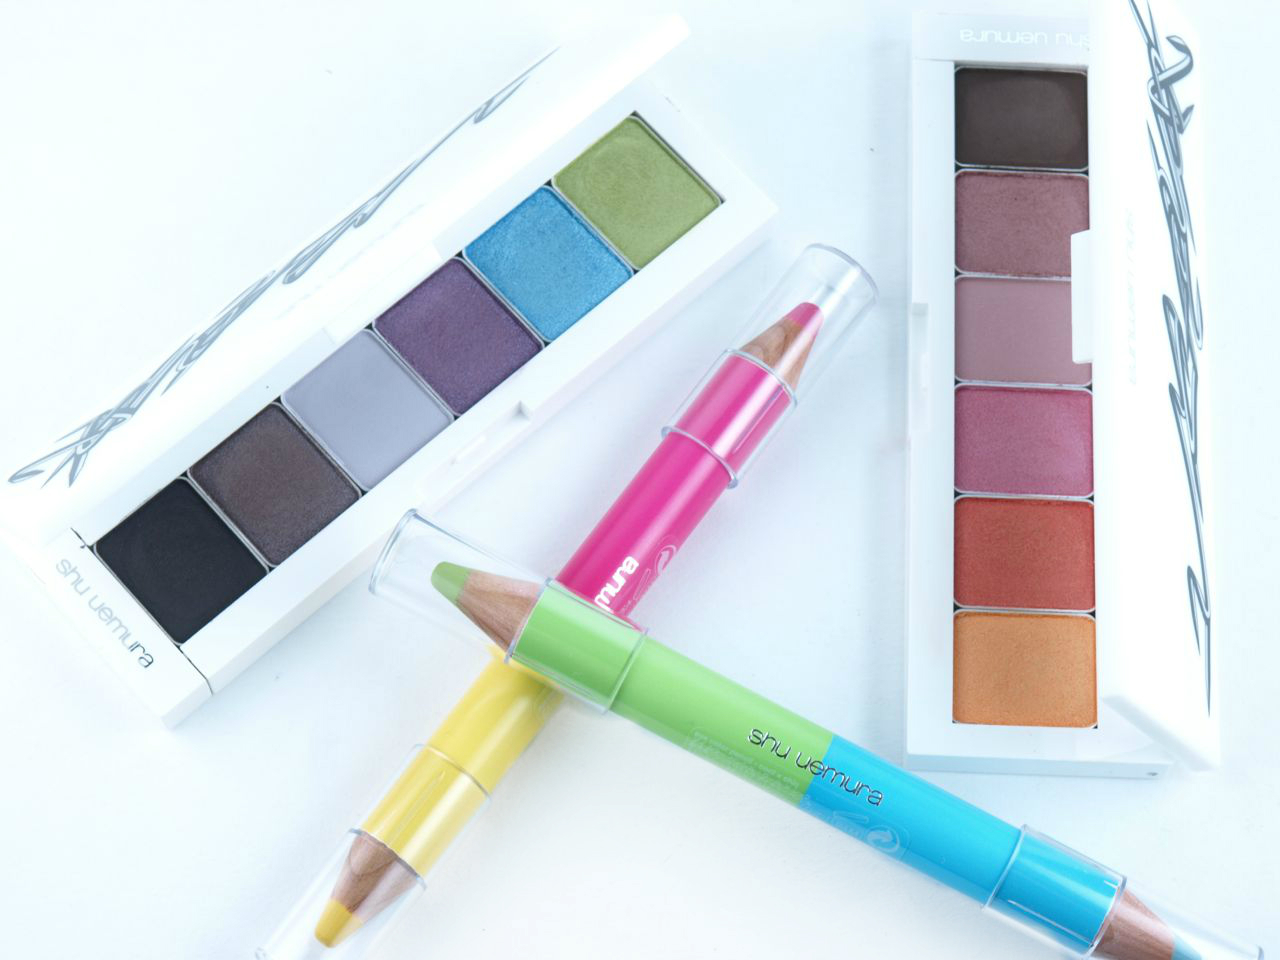 Shu Uemura Vision of Beauty Vol.2 Haute Street Collection Palettes and Eye Color Pe ncils: Review and Swatches